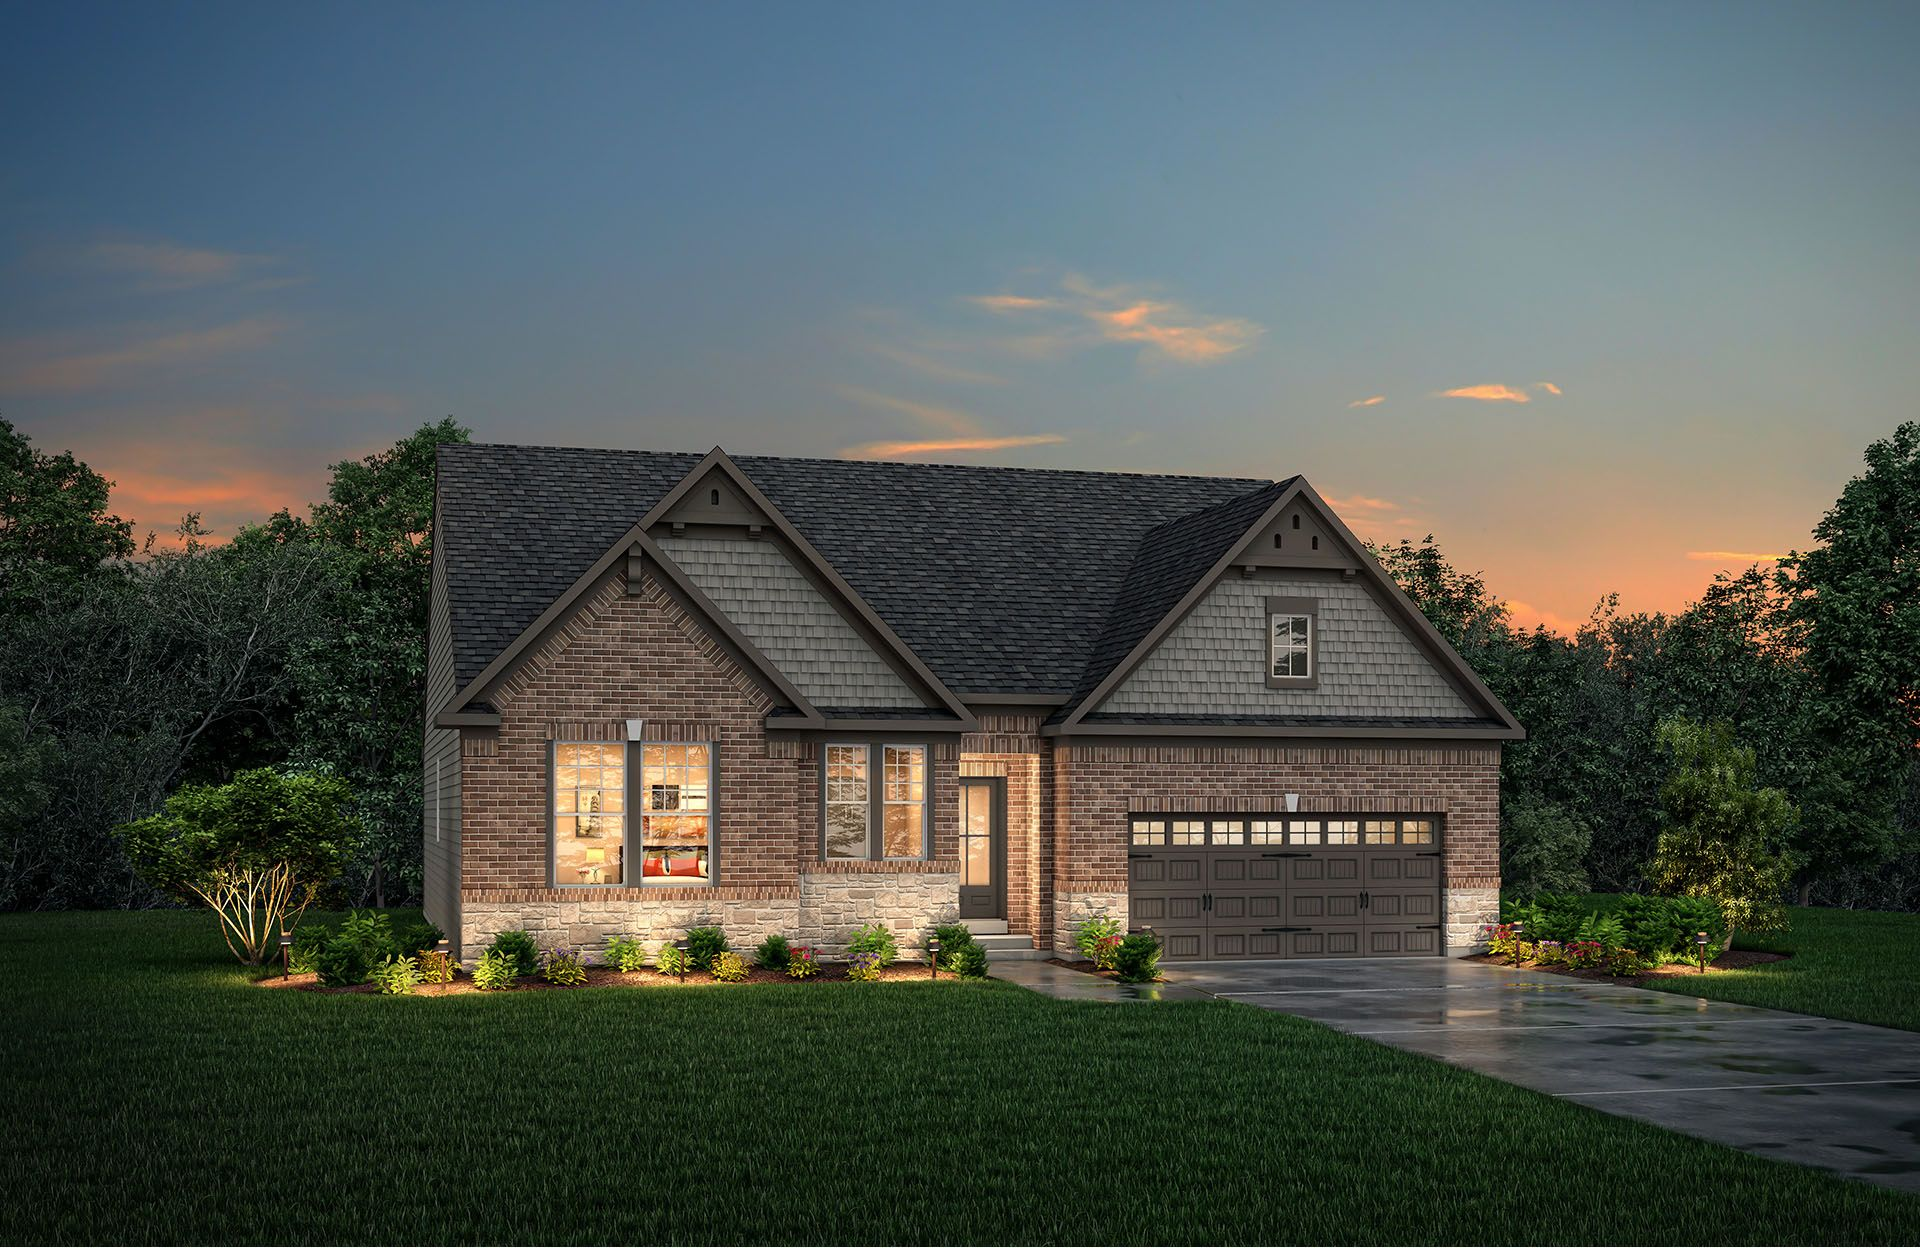 46033 New Construction Homes & Plans   2,803 Homes ... on